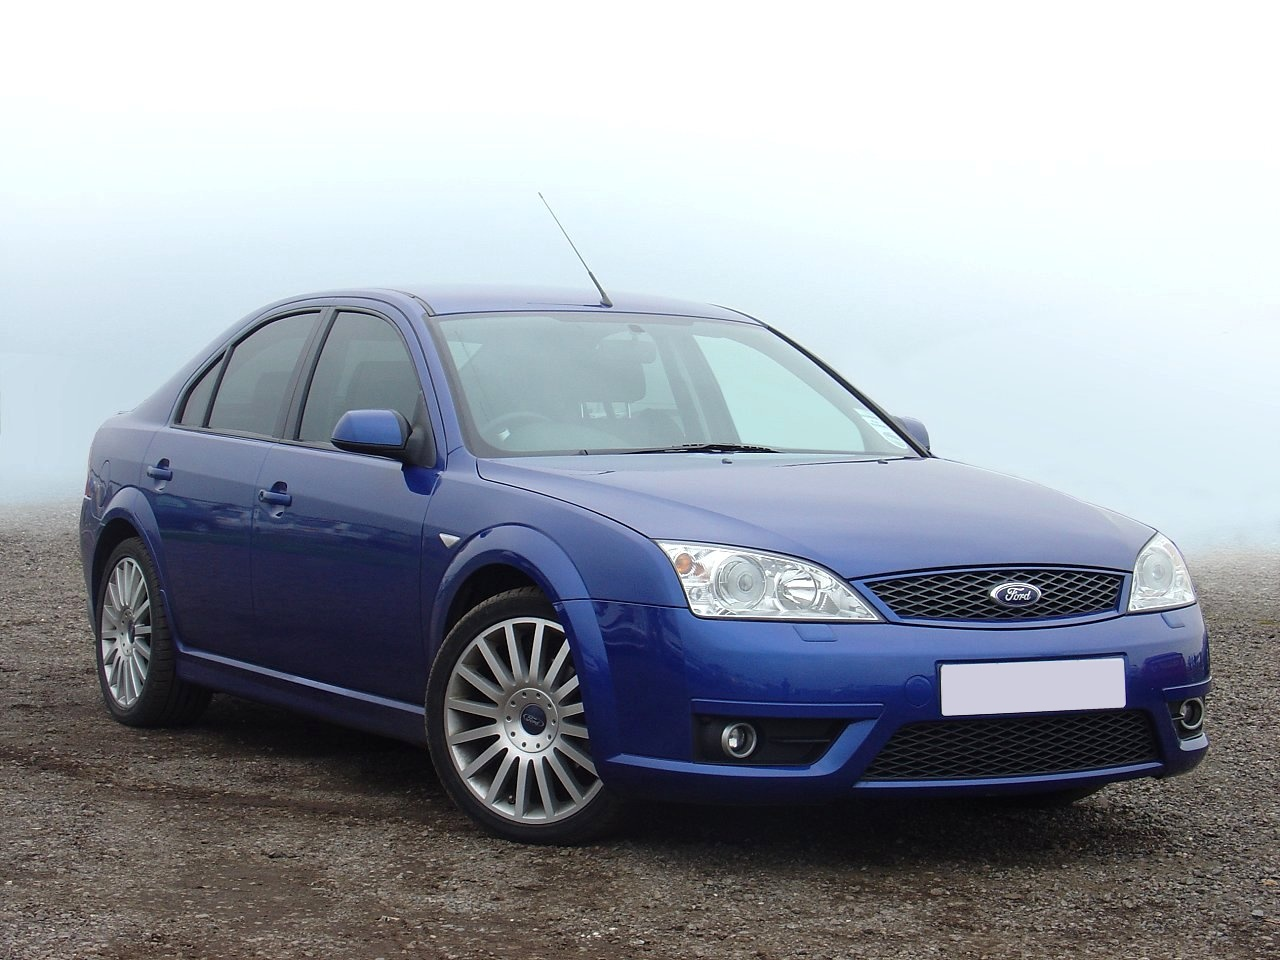 Ford Mondeo 2004 photo - 5